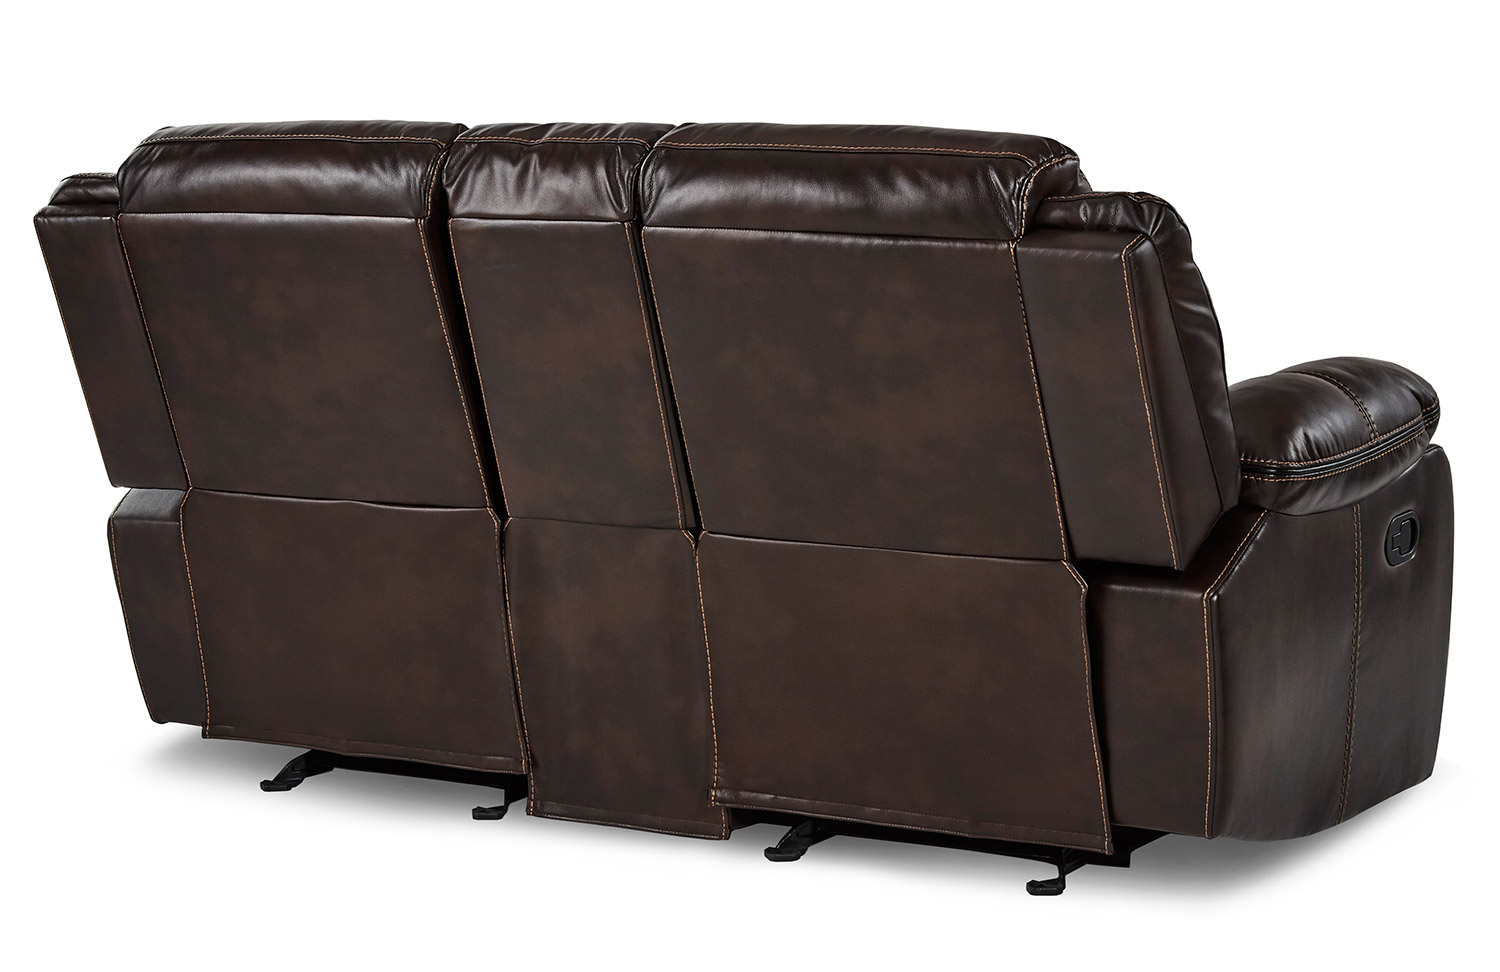 Homelegance Bastrop Double Glider Reclining Love Seat With Center Console - Dark Brown